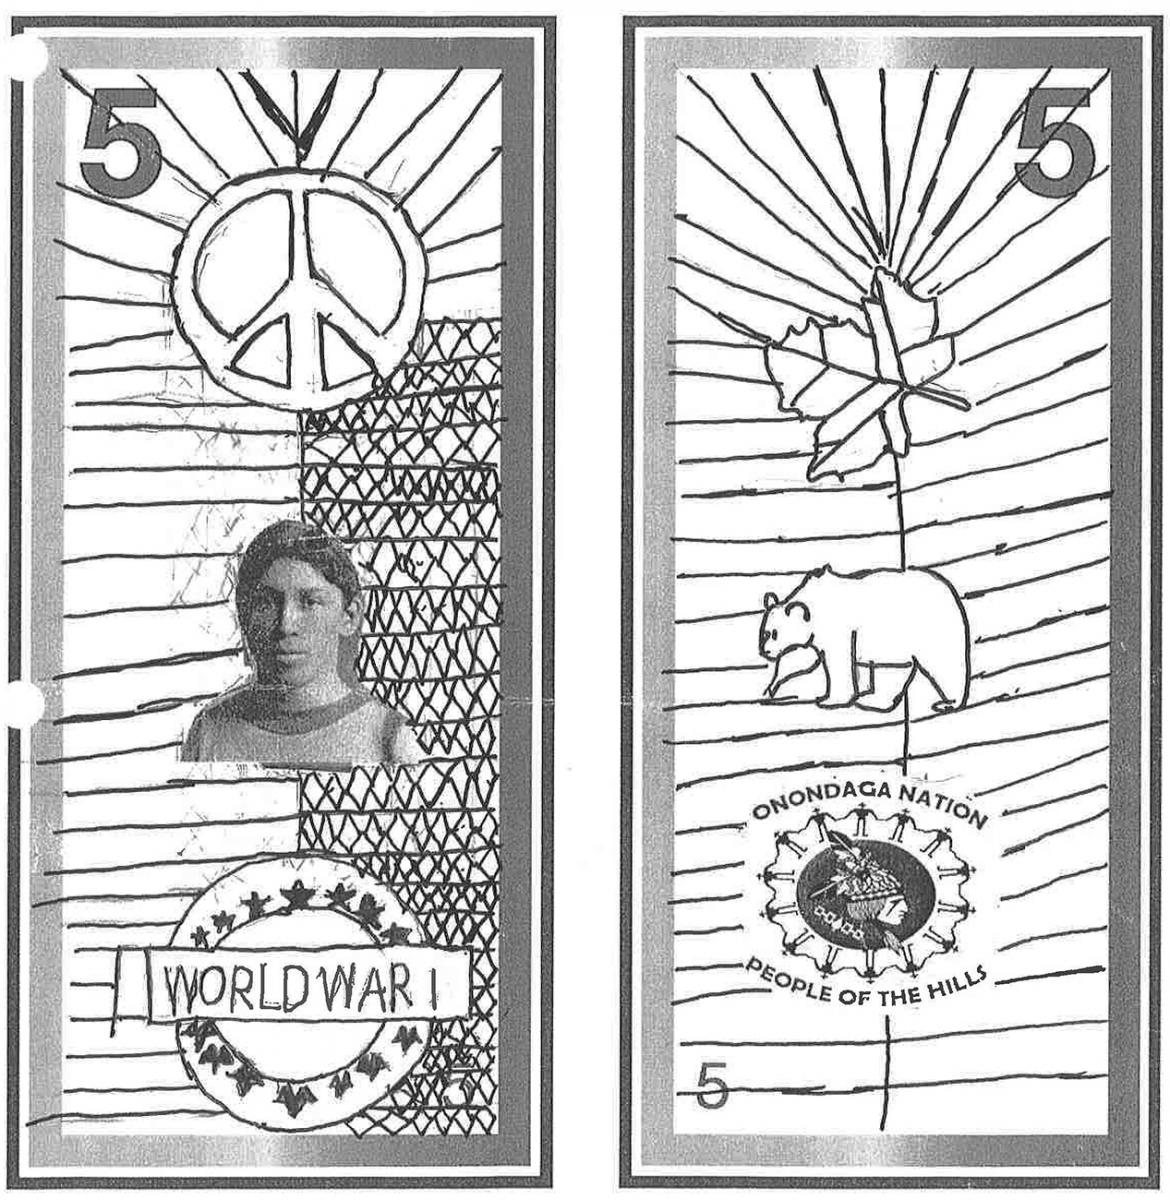 illustration, 5 dollar bill model showing a photo of a young man and pencil-sketched Indigenous symbols